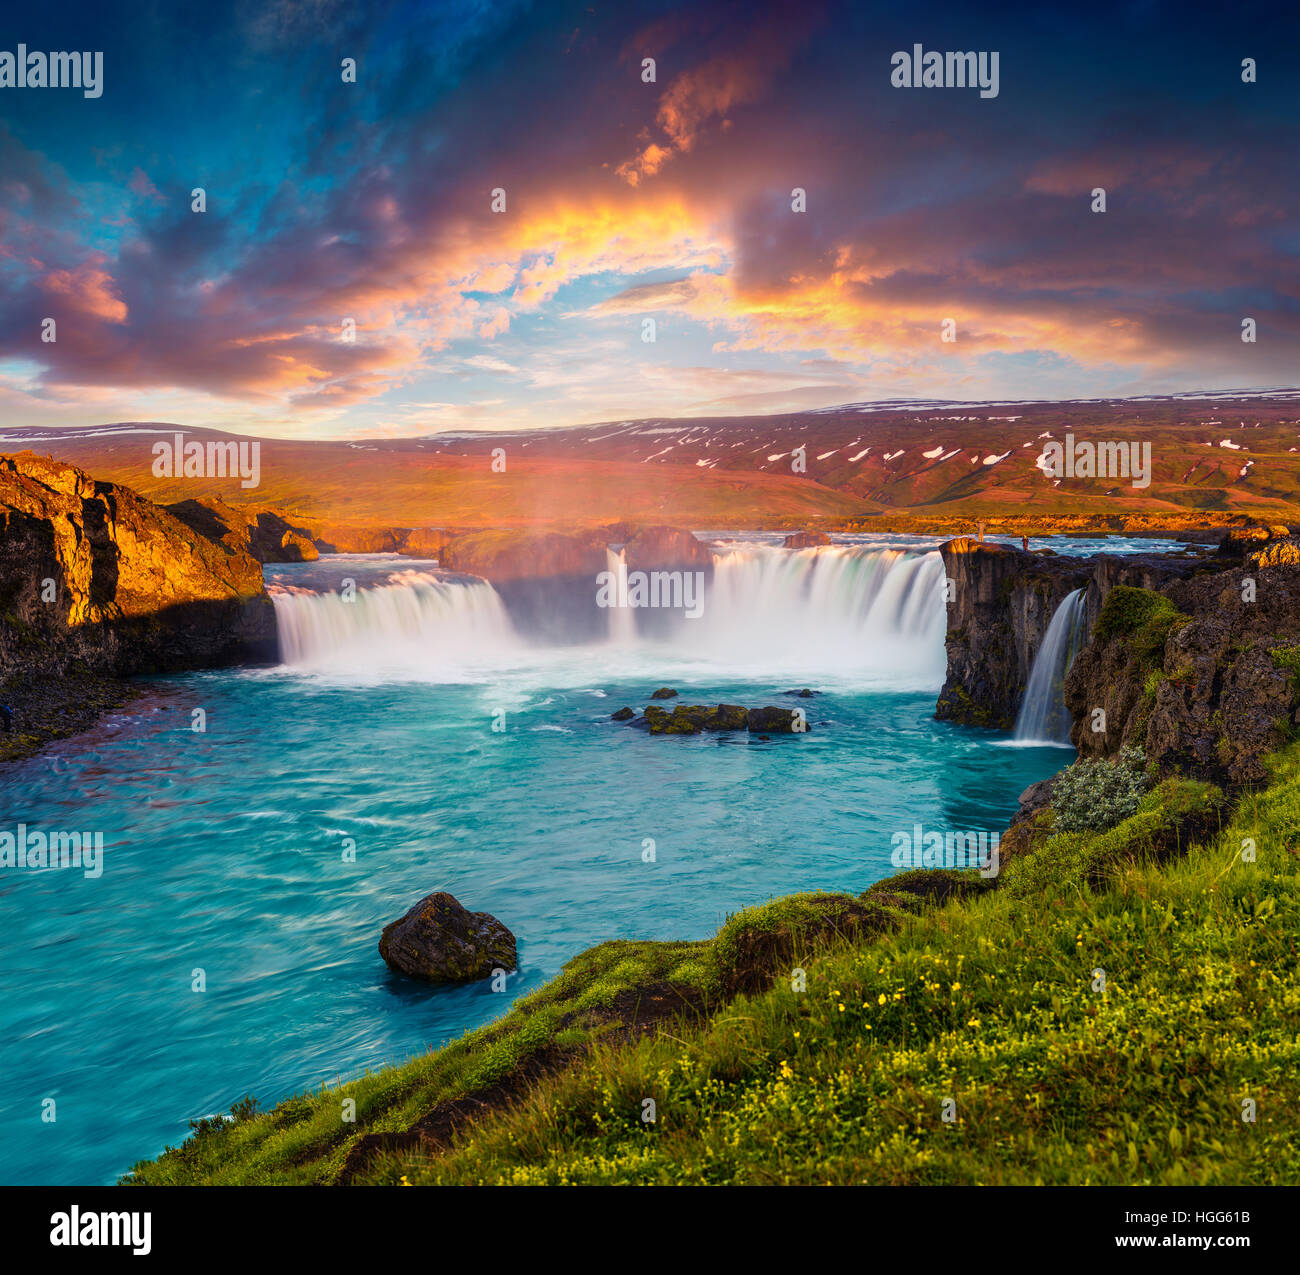 Summer morning scene on the Godafoss Waterfall. Colorful sunrise on the on Skjalfandafljot river, Iceland, Europe. - Stock Image